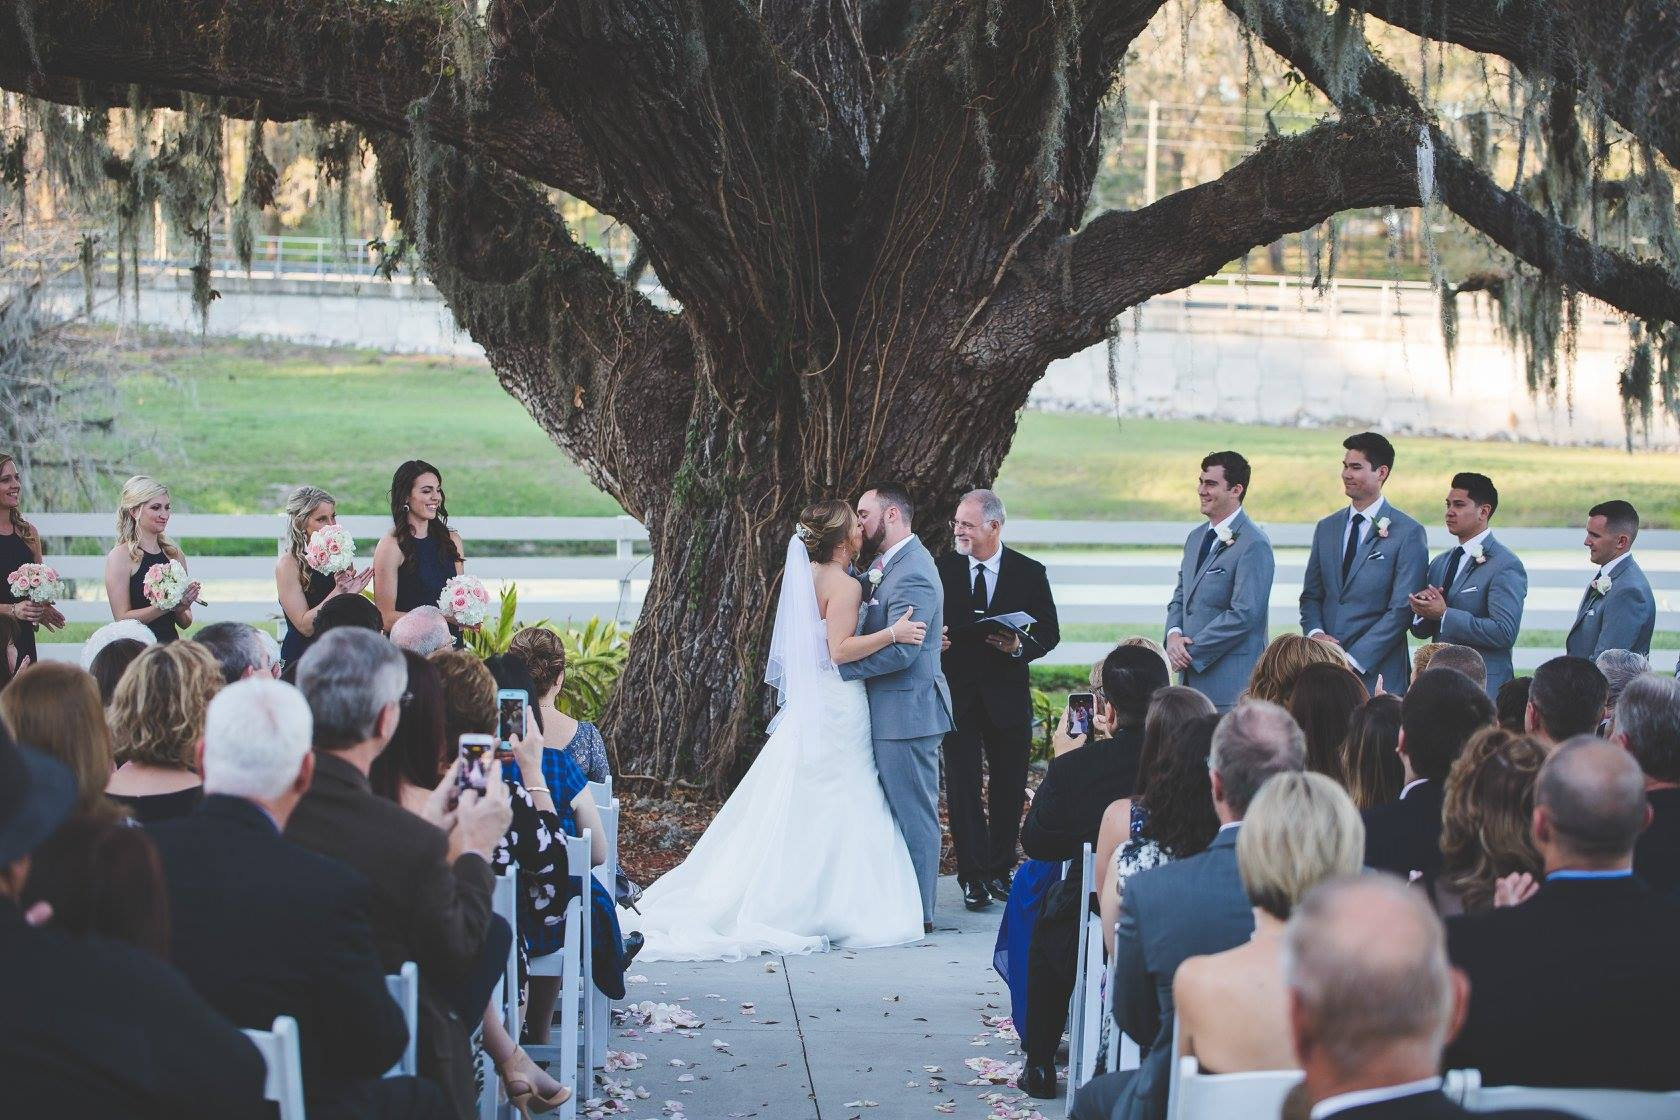 Bride and groom kiss under tree at ceremony